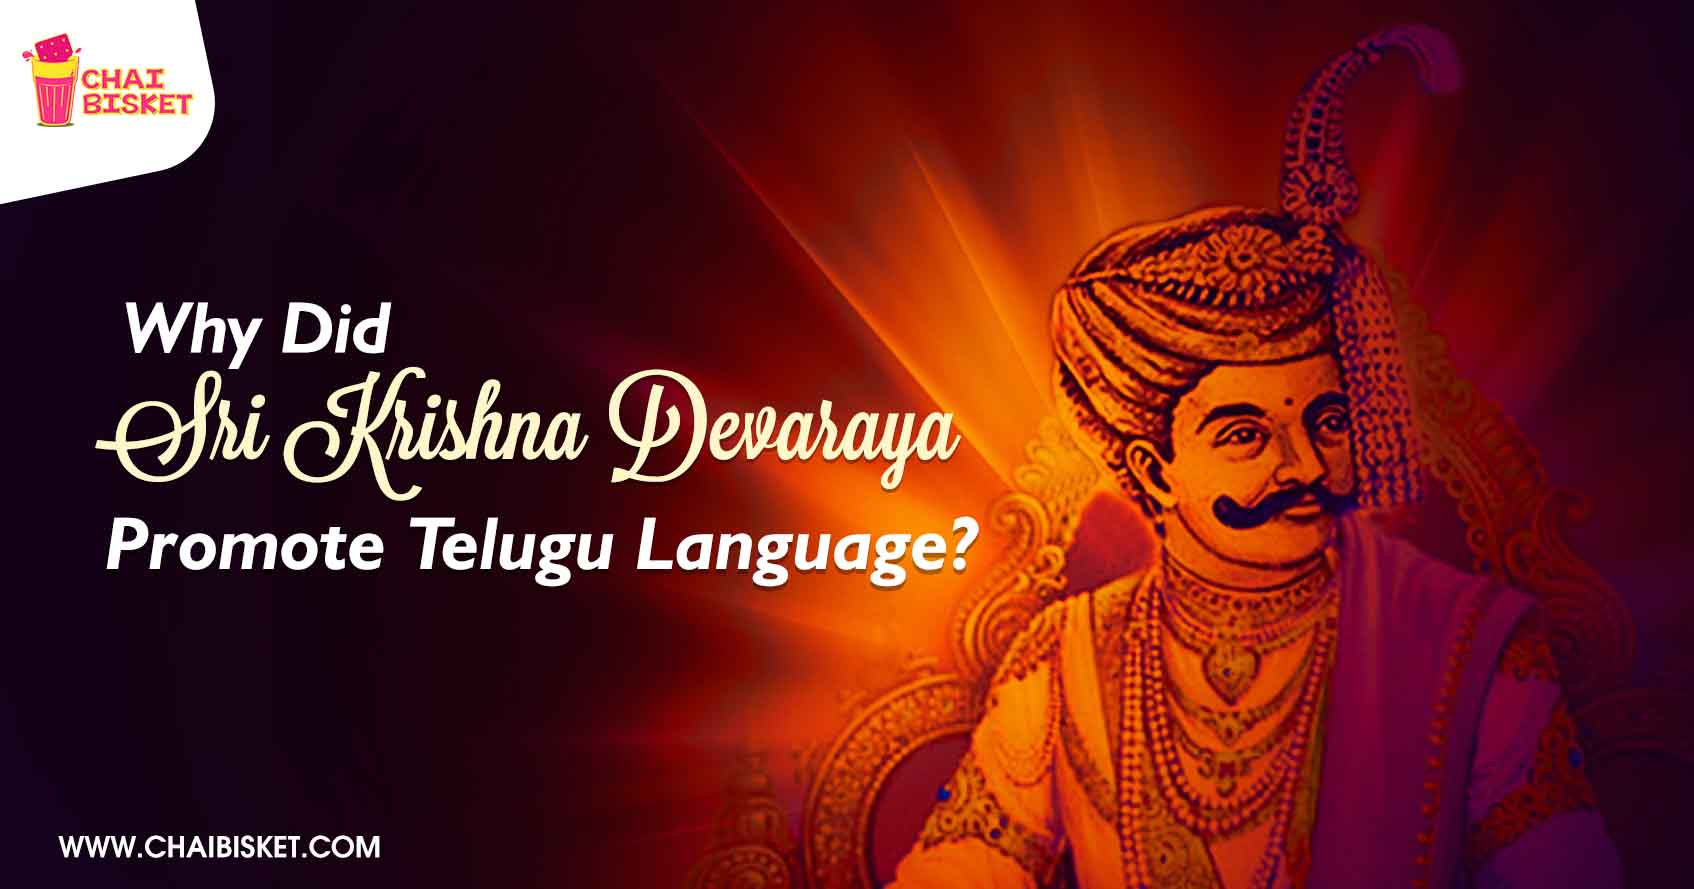 The Story Of Why A Kannada Ruler Extensively Promoted Telugu